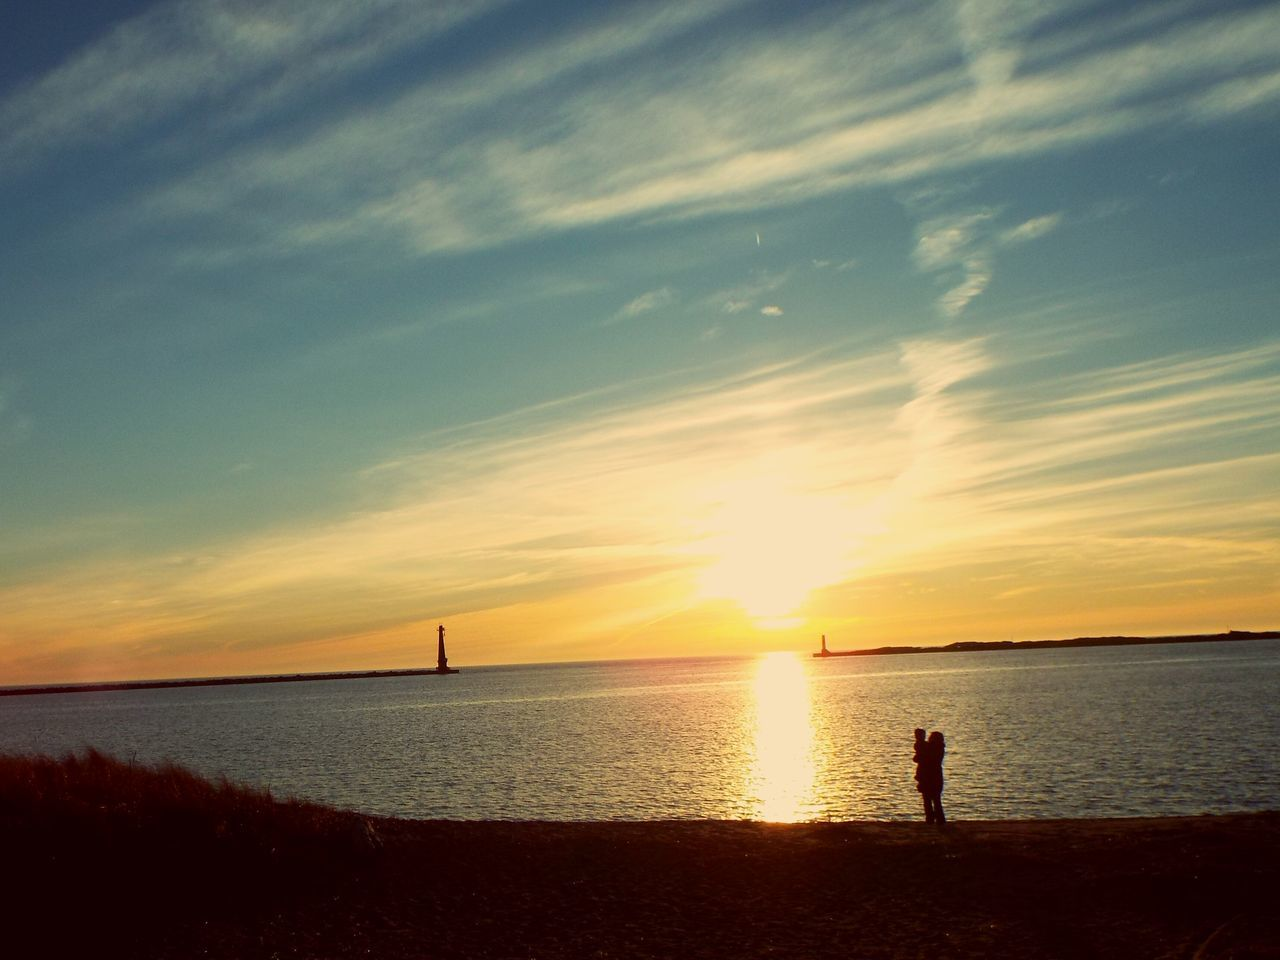 A Mother's Love Sunsetting Water Lake Beach Sky Mother And Child Sweet Moments Love ♥ Shared Hearts Two Souls One Heart March Showcase Check This Out Capture The Moment Learn & Shoot: Balancing Elements Landscapes With WhiteWall